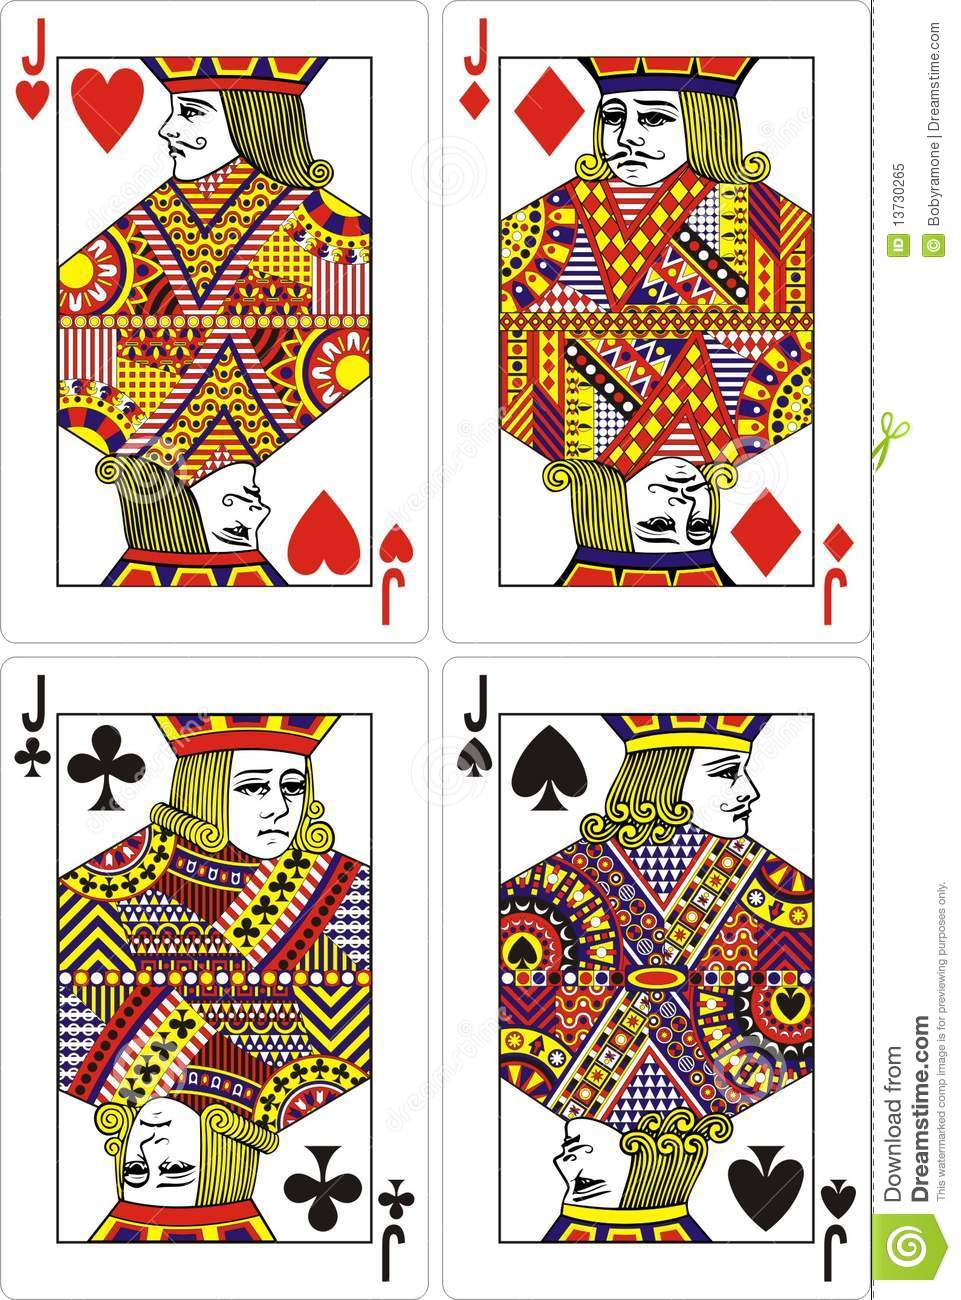 king of hearts game